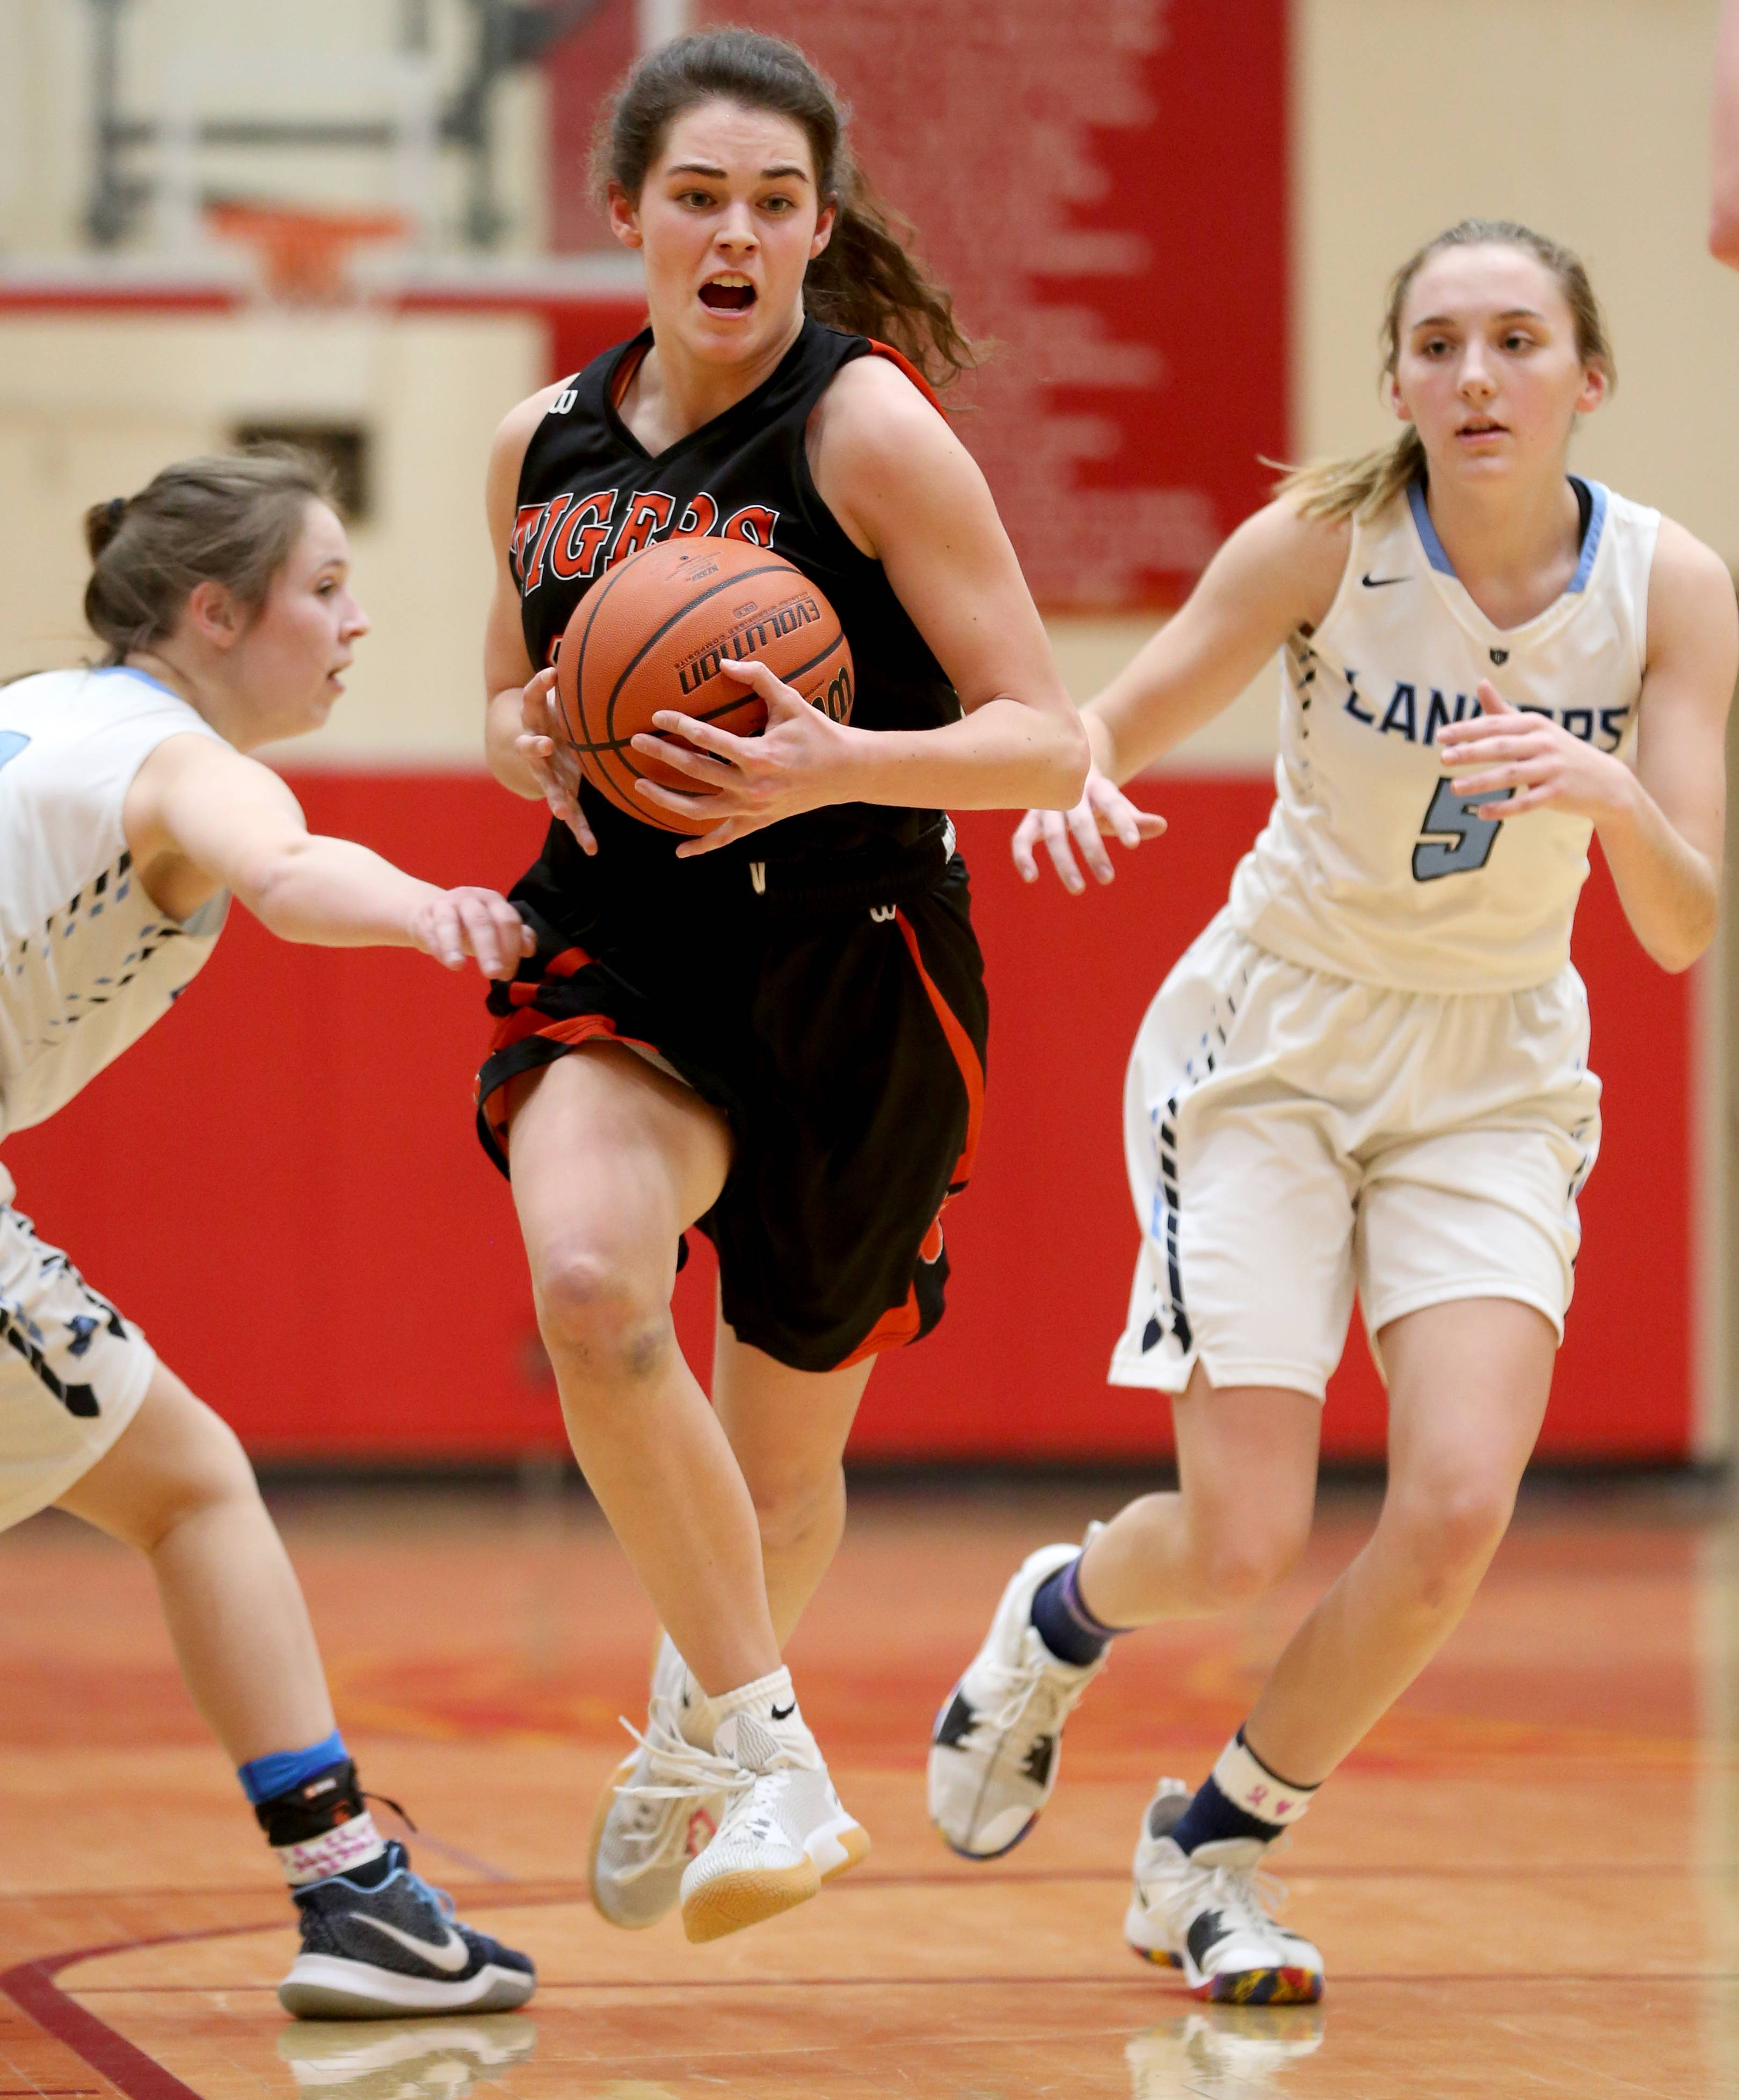 Wheaton Warrenville South's MacKenzie Stebbins moves the ball against Lake Park during sectional semifinal girls basketball action at Batavia Monday night.